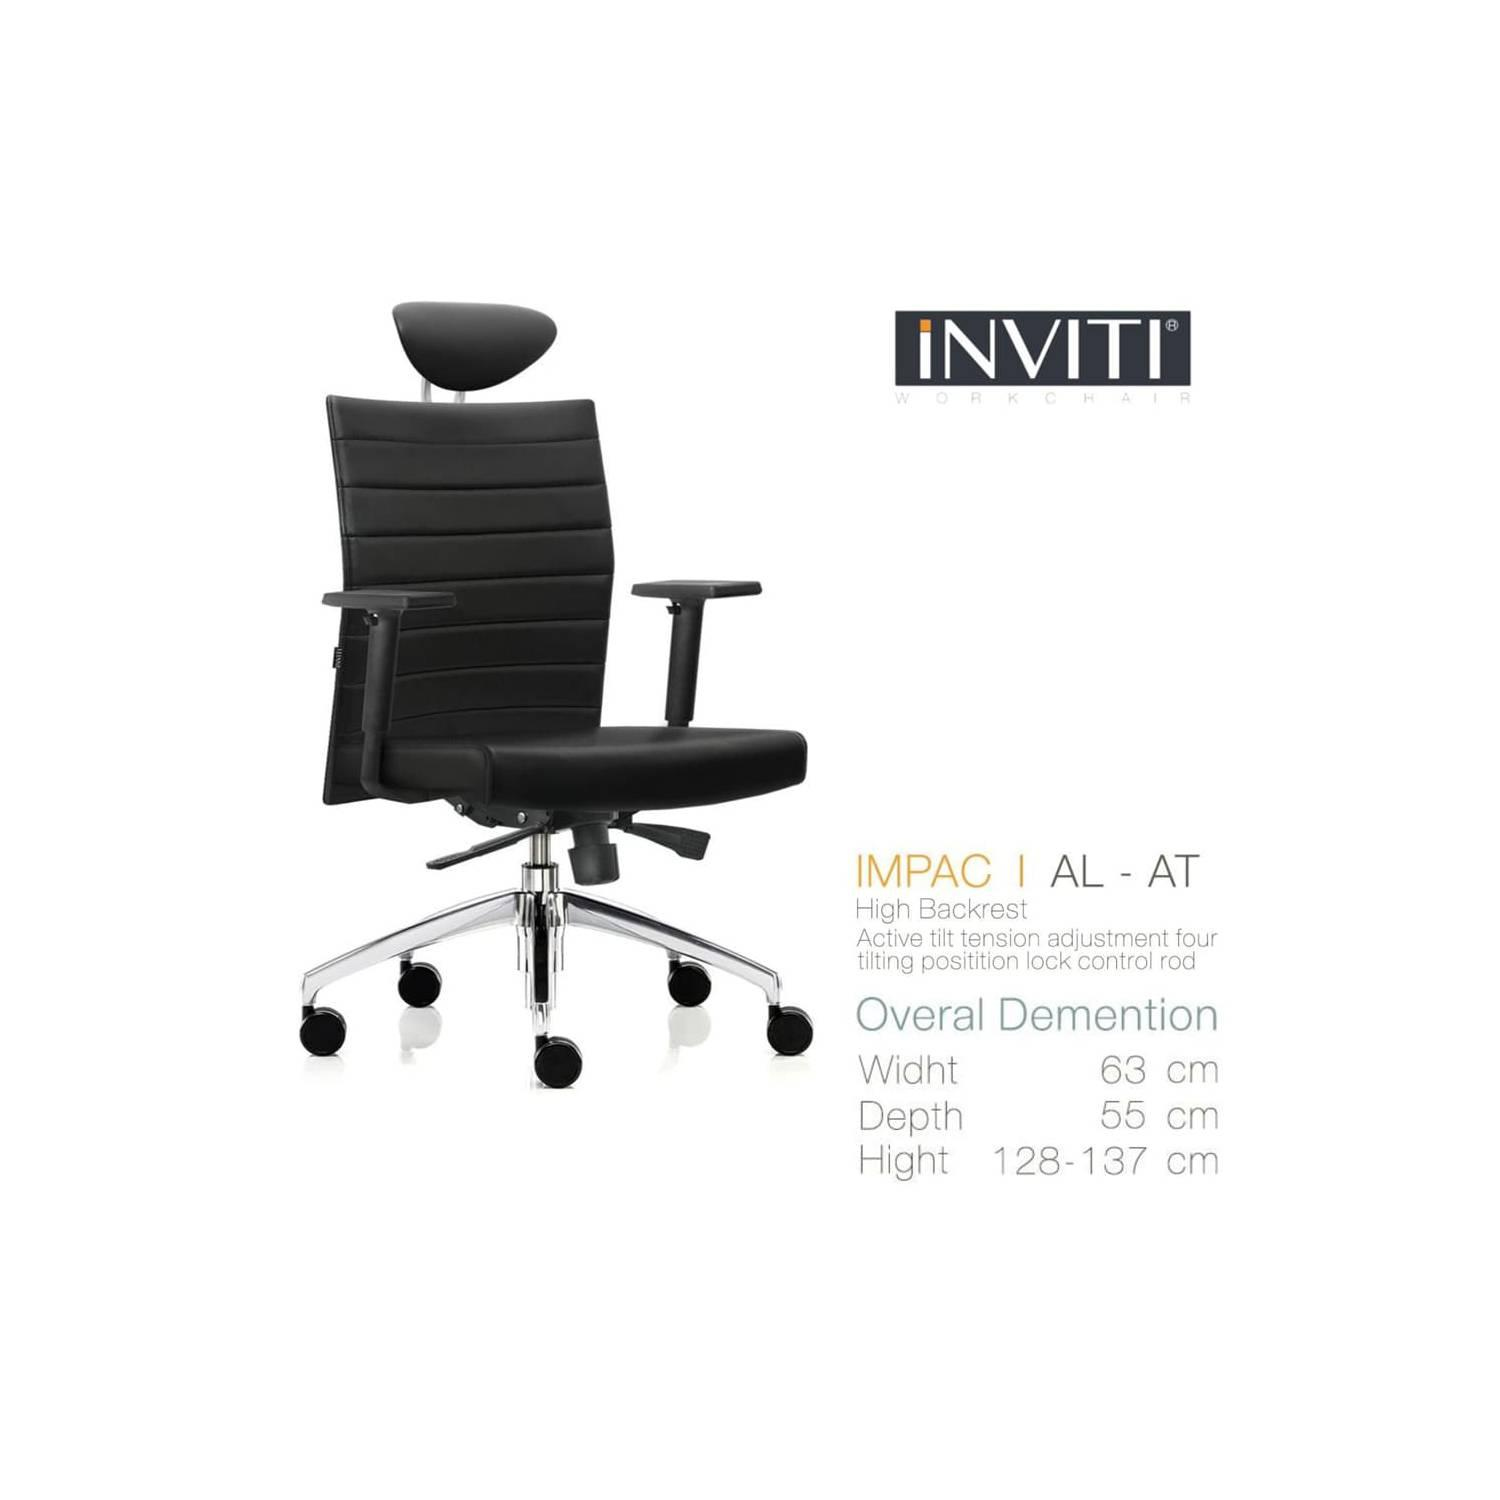 IMPAC I AL-AT Kursi Kantor (Office Chair) INVITI